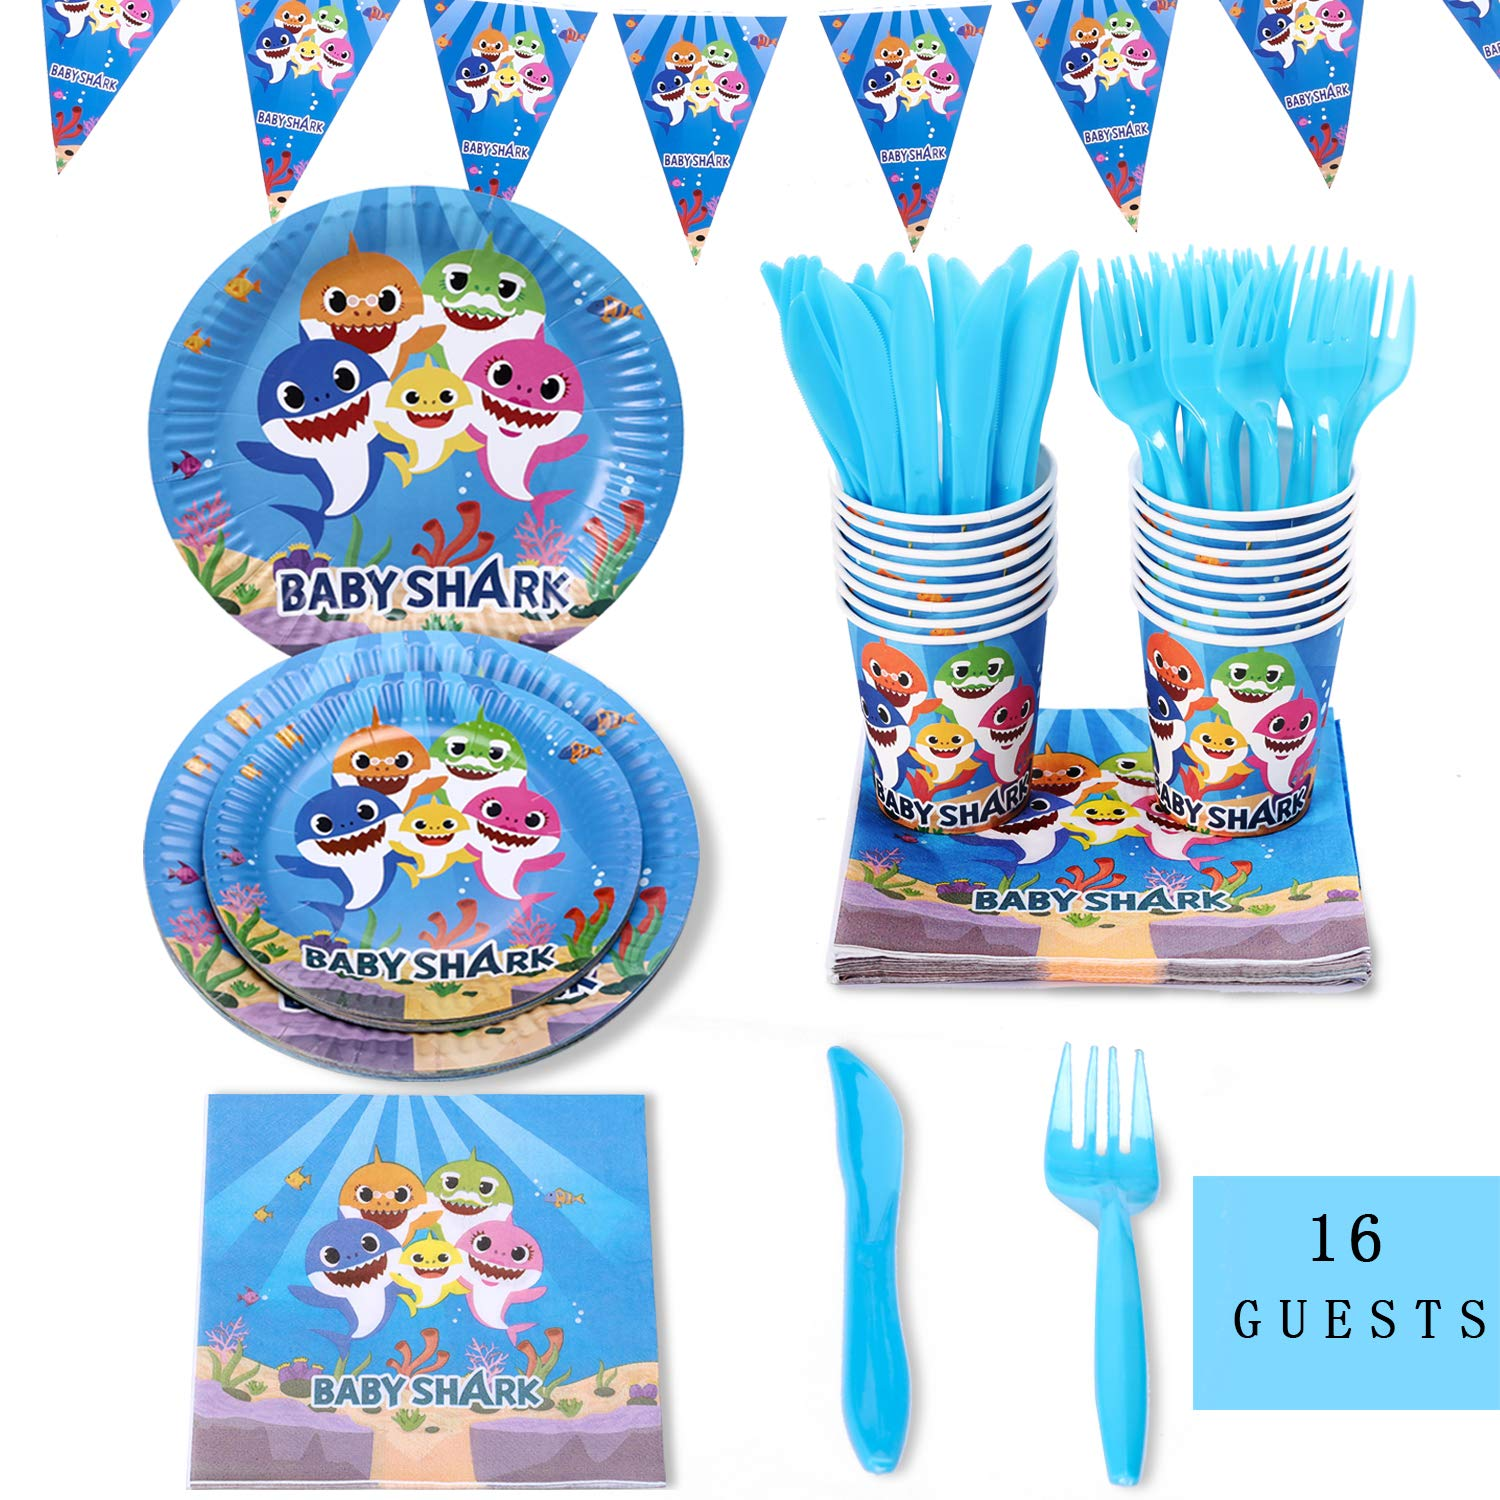 Baby Shark Party Bundles for 16 Guests